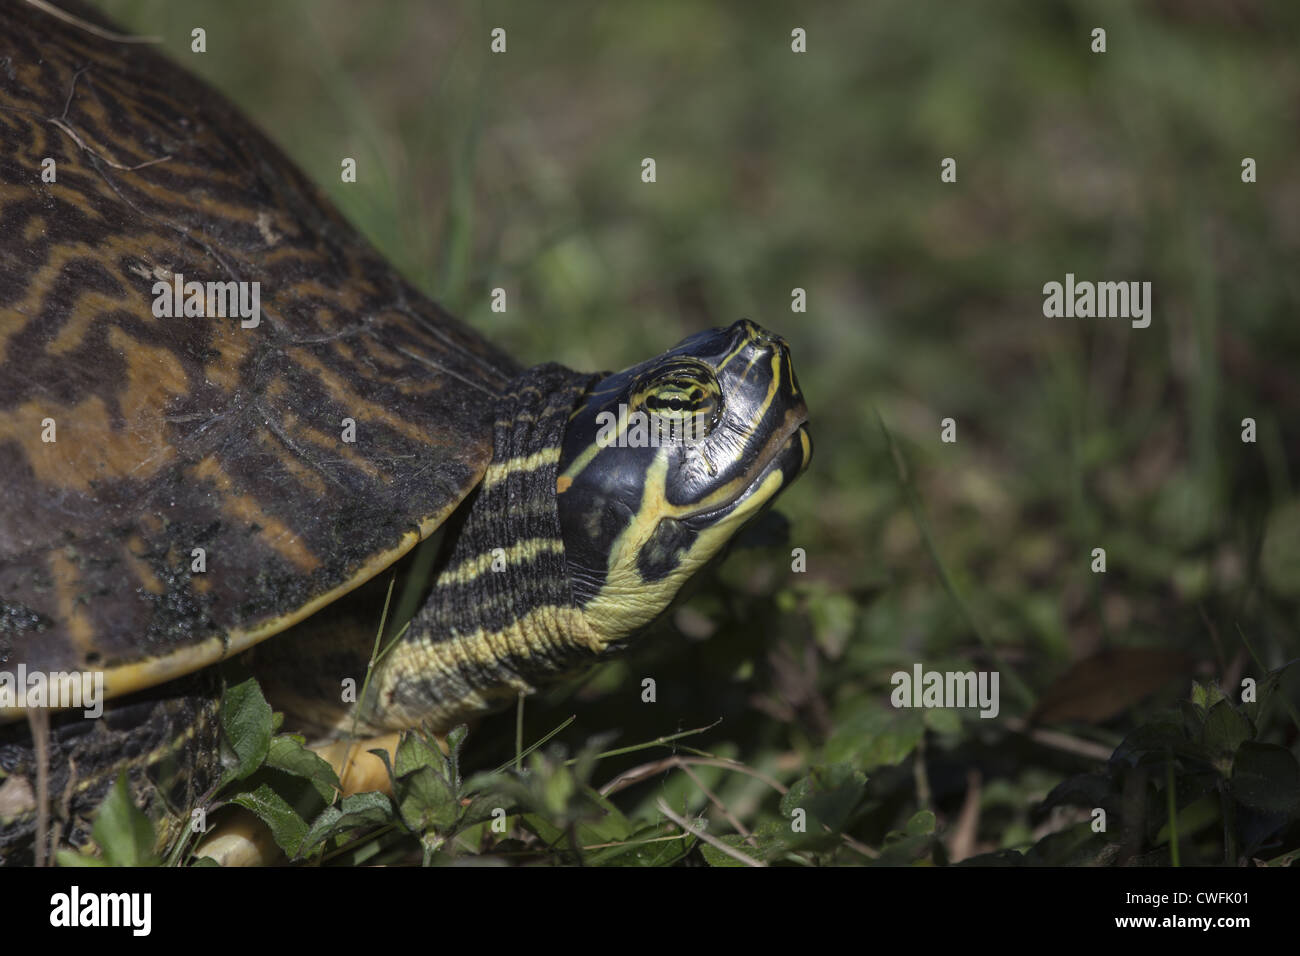 Turtle extending it's head and neck out of its shell Stock Photo